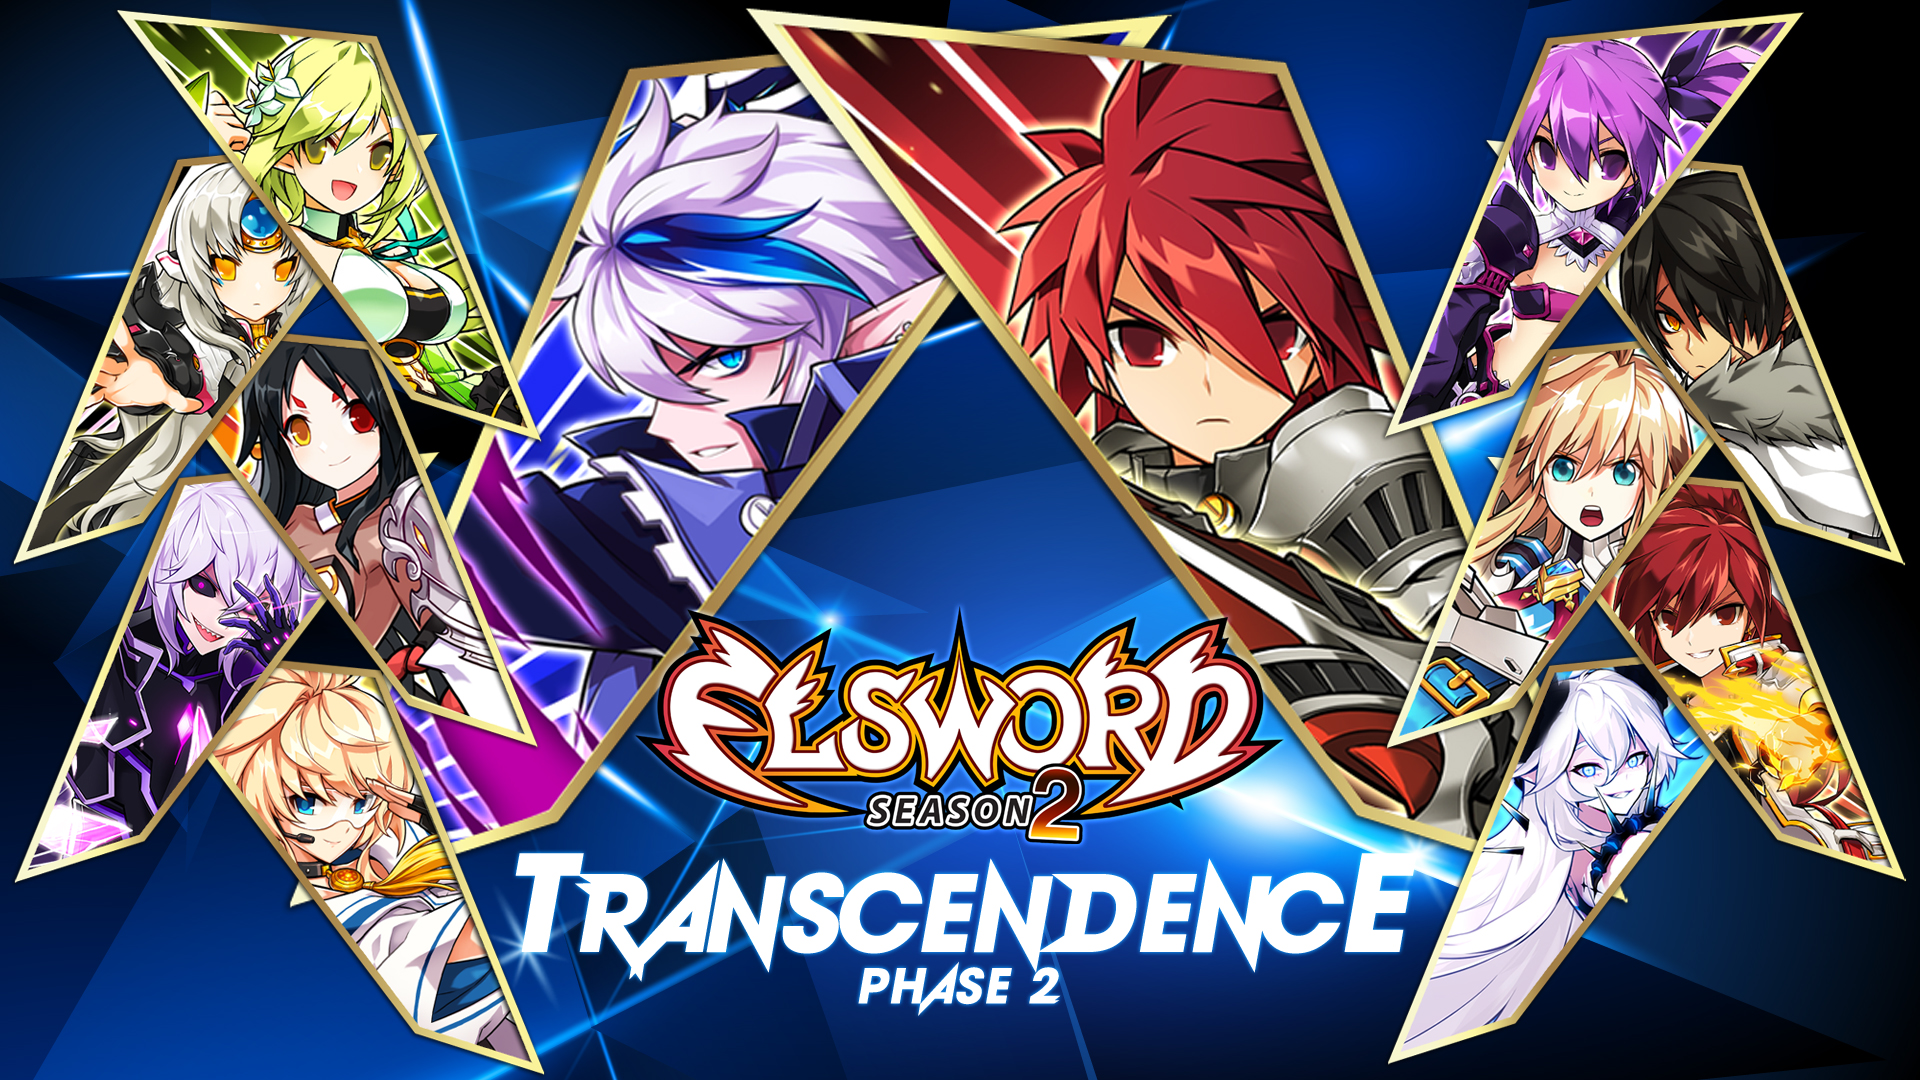 Pc Wallpaper Anime Hd Elsword Gets Phase 2 Of Transcendence Update Hey Poor Player